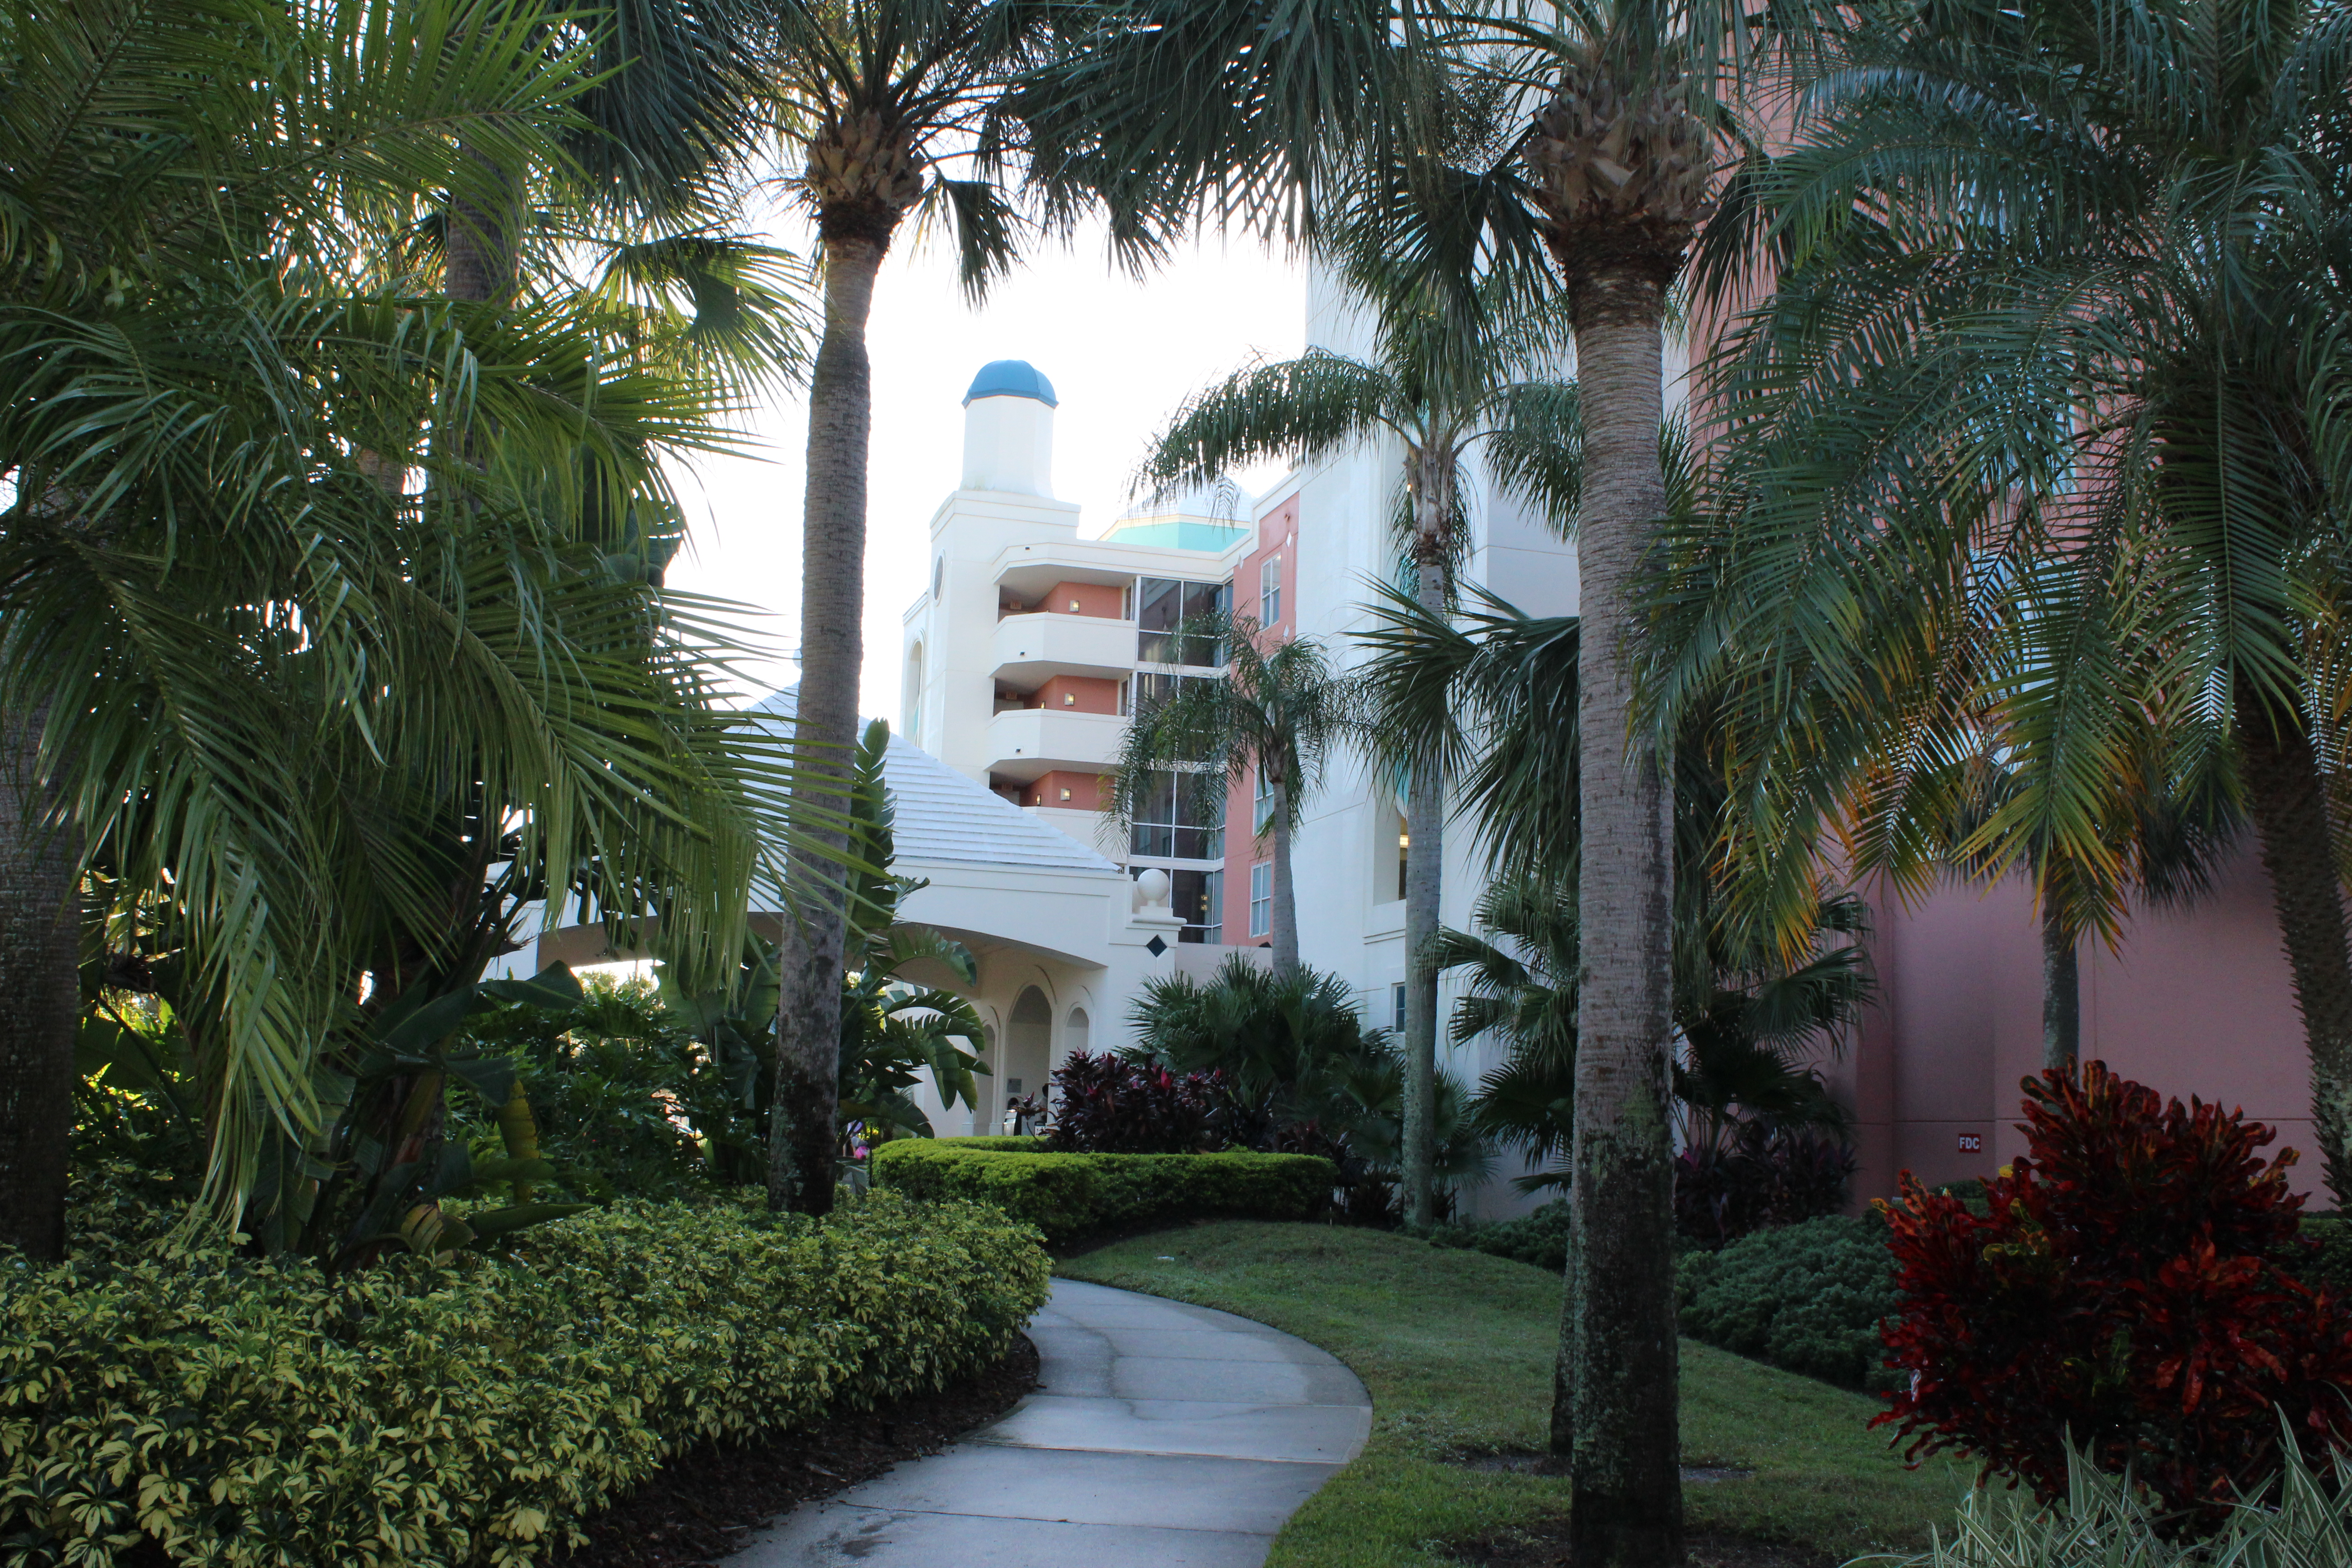 A Family-friendly Disney Vacation at Embassy Suites When planning a family-friendly vacation at Disney, affordable hotels are key. Embassy Suites Orlando delivers a fun-filled affordable family stay.